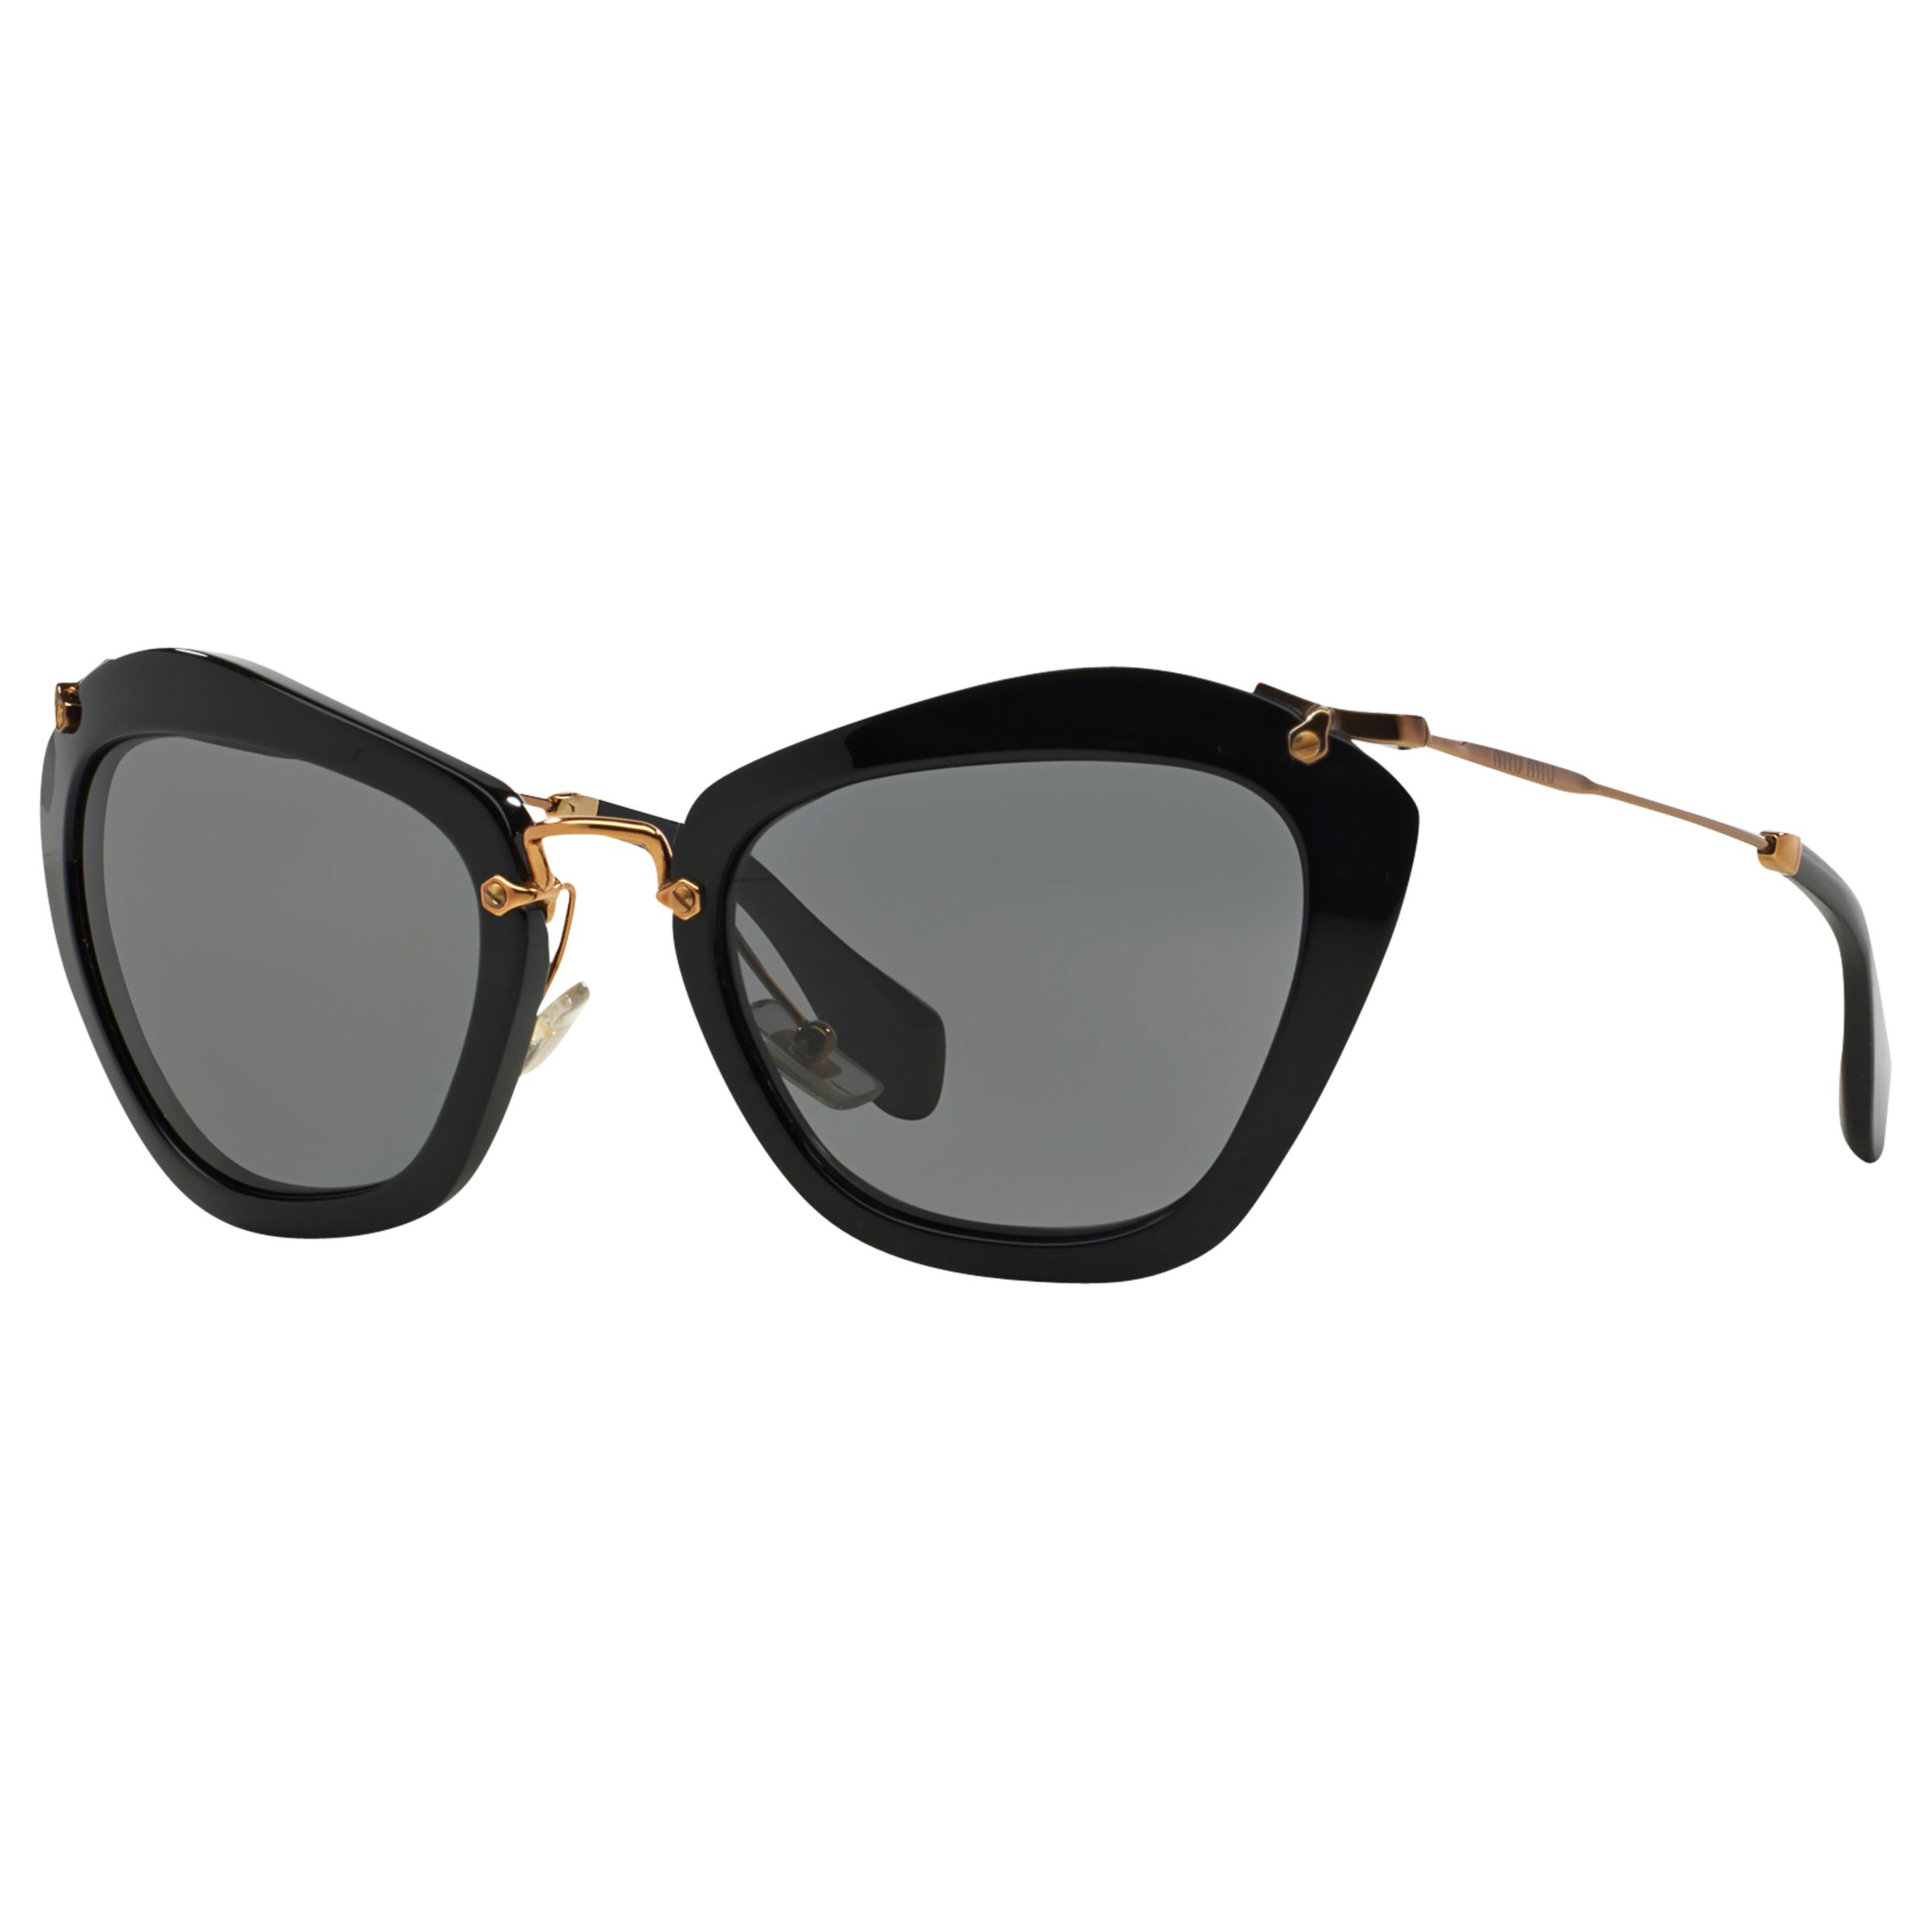 Miu Miu Miu Miu MU10NS Cat's Eye Sunglasses, Black